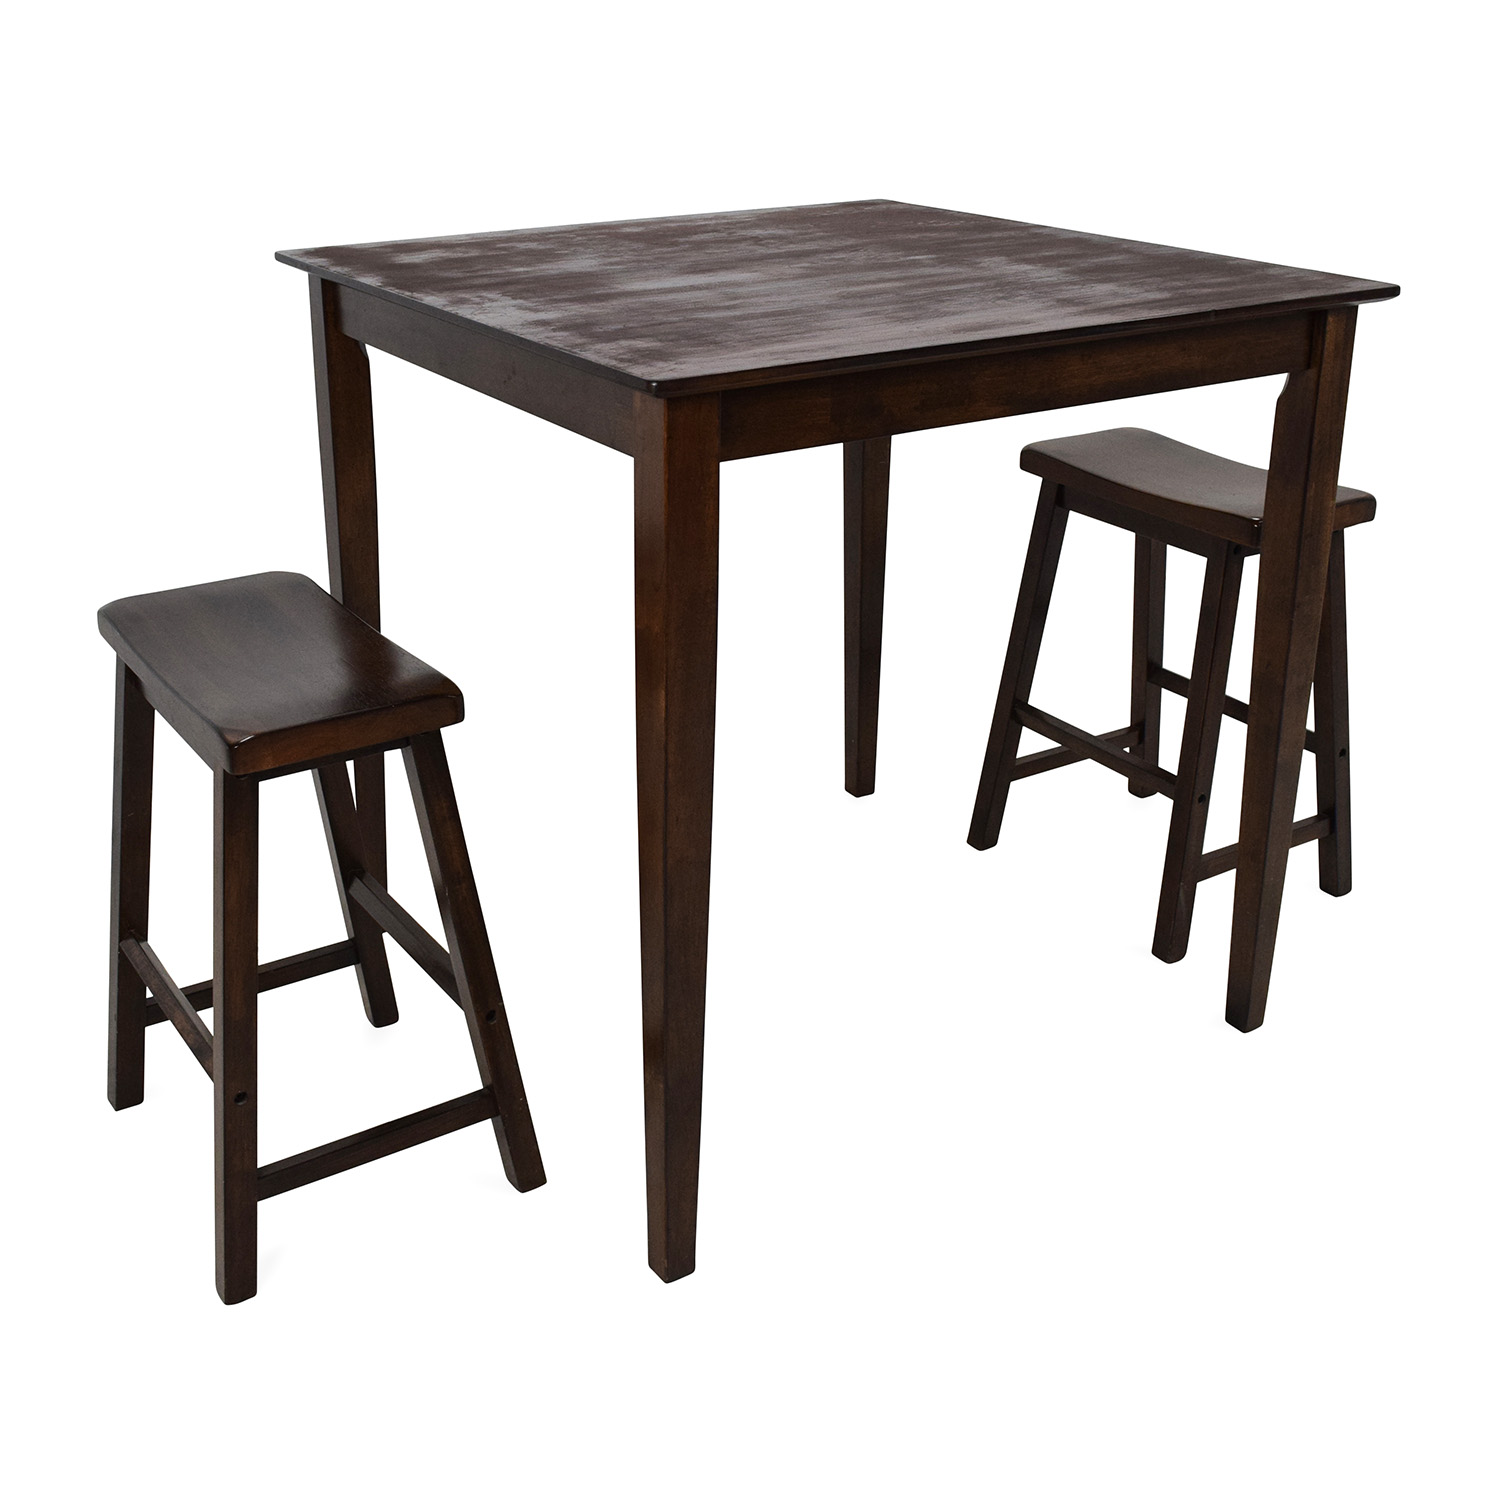 Ashley Furniture Ashley Furniture Kitchen Table and Chairs on sale